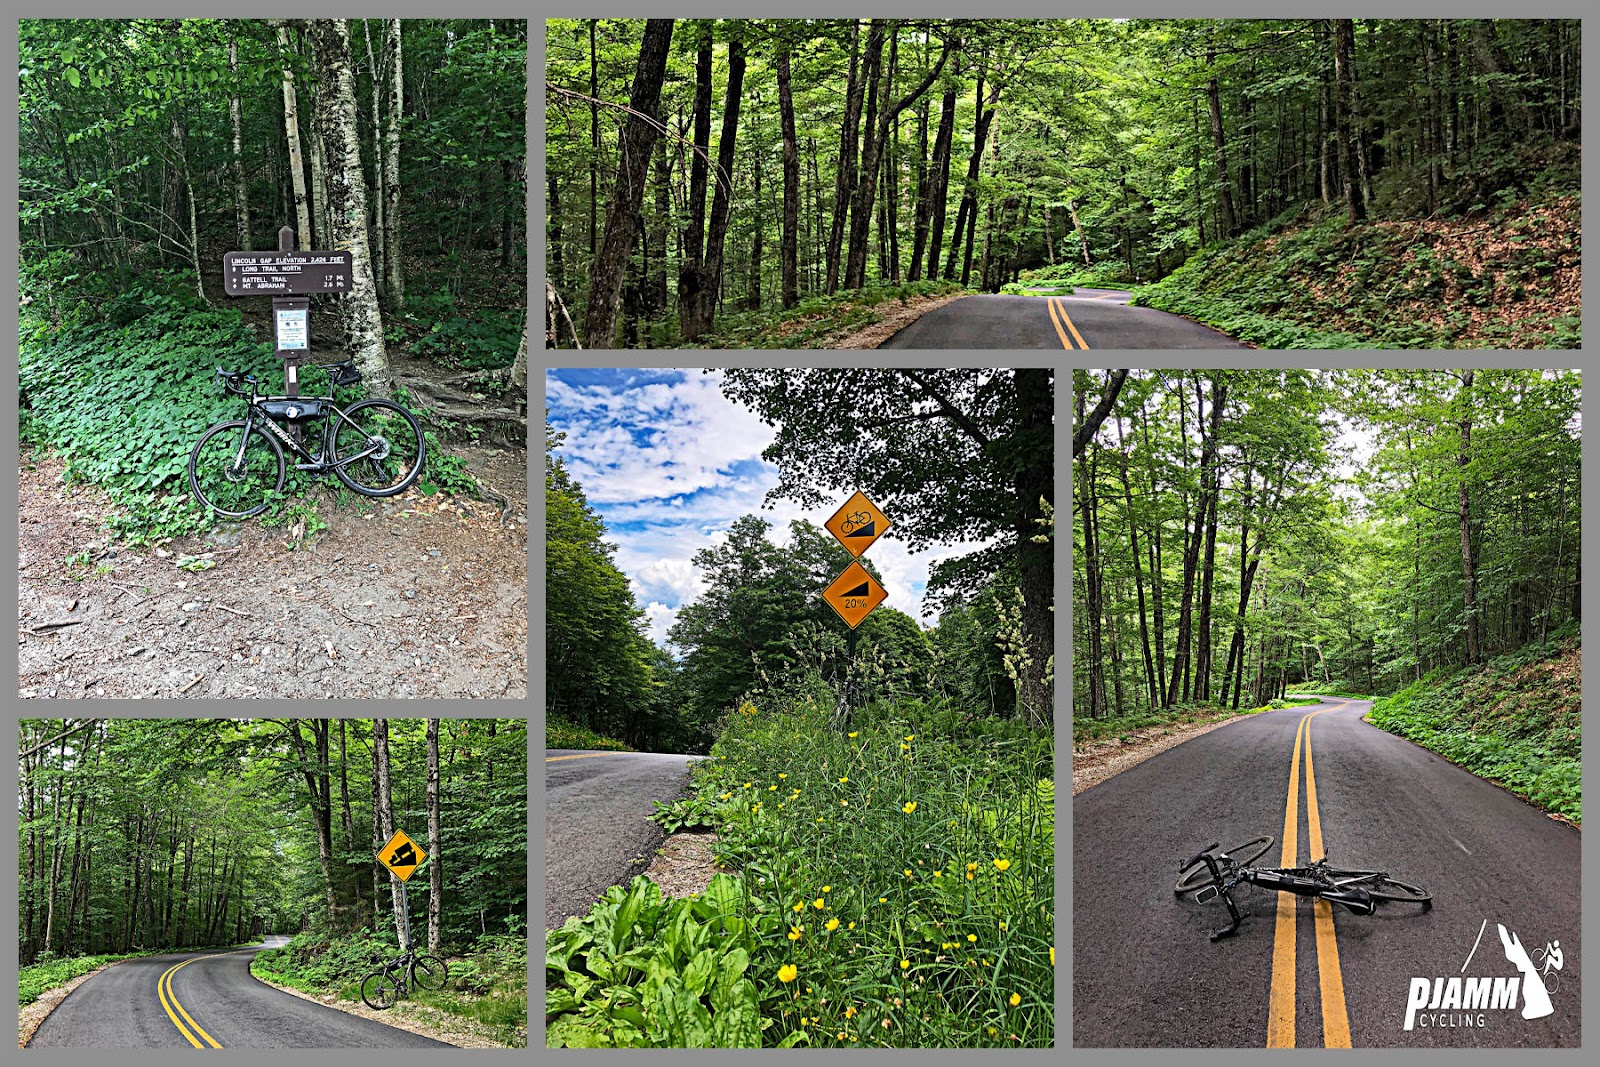 Cycling Lincoln Gap East - photo collage, bike propped against Lincoln Gap trail sign, dense tree canopy along two lane road, curve in road with steep grade road sign, yellow flowers in grass along road, bike laying down across double yellow line along a straightaway in the roadway